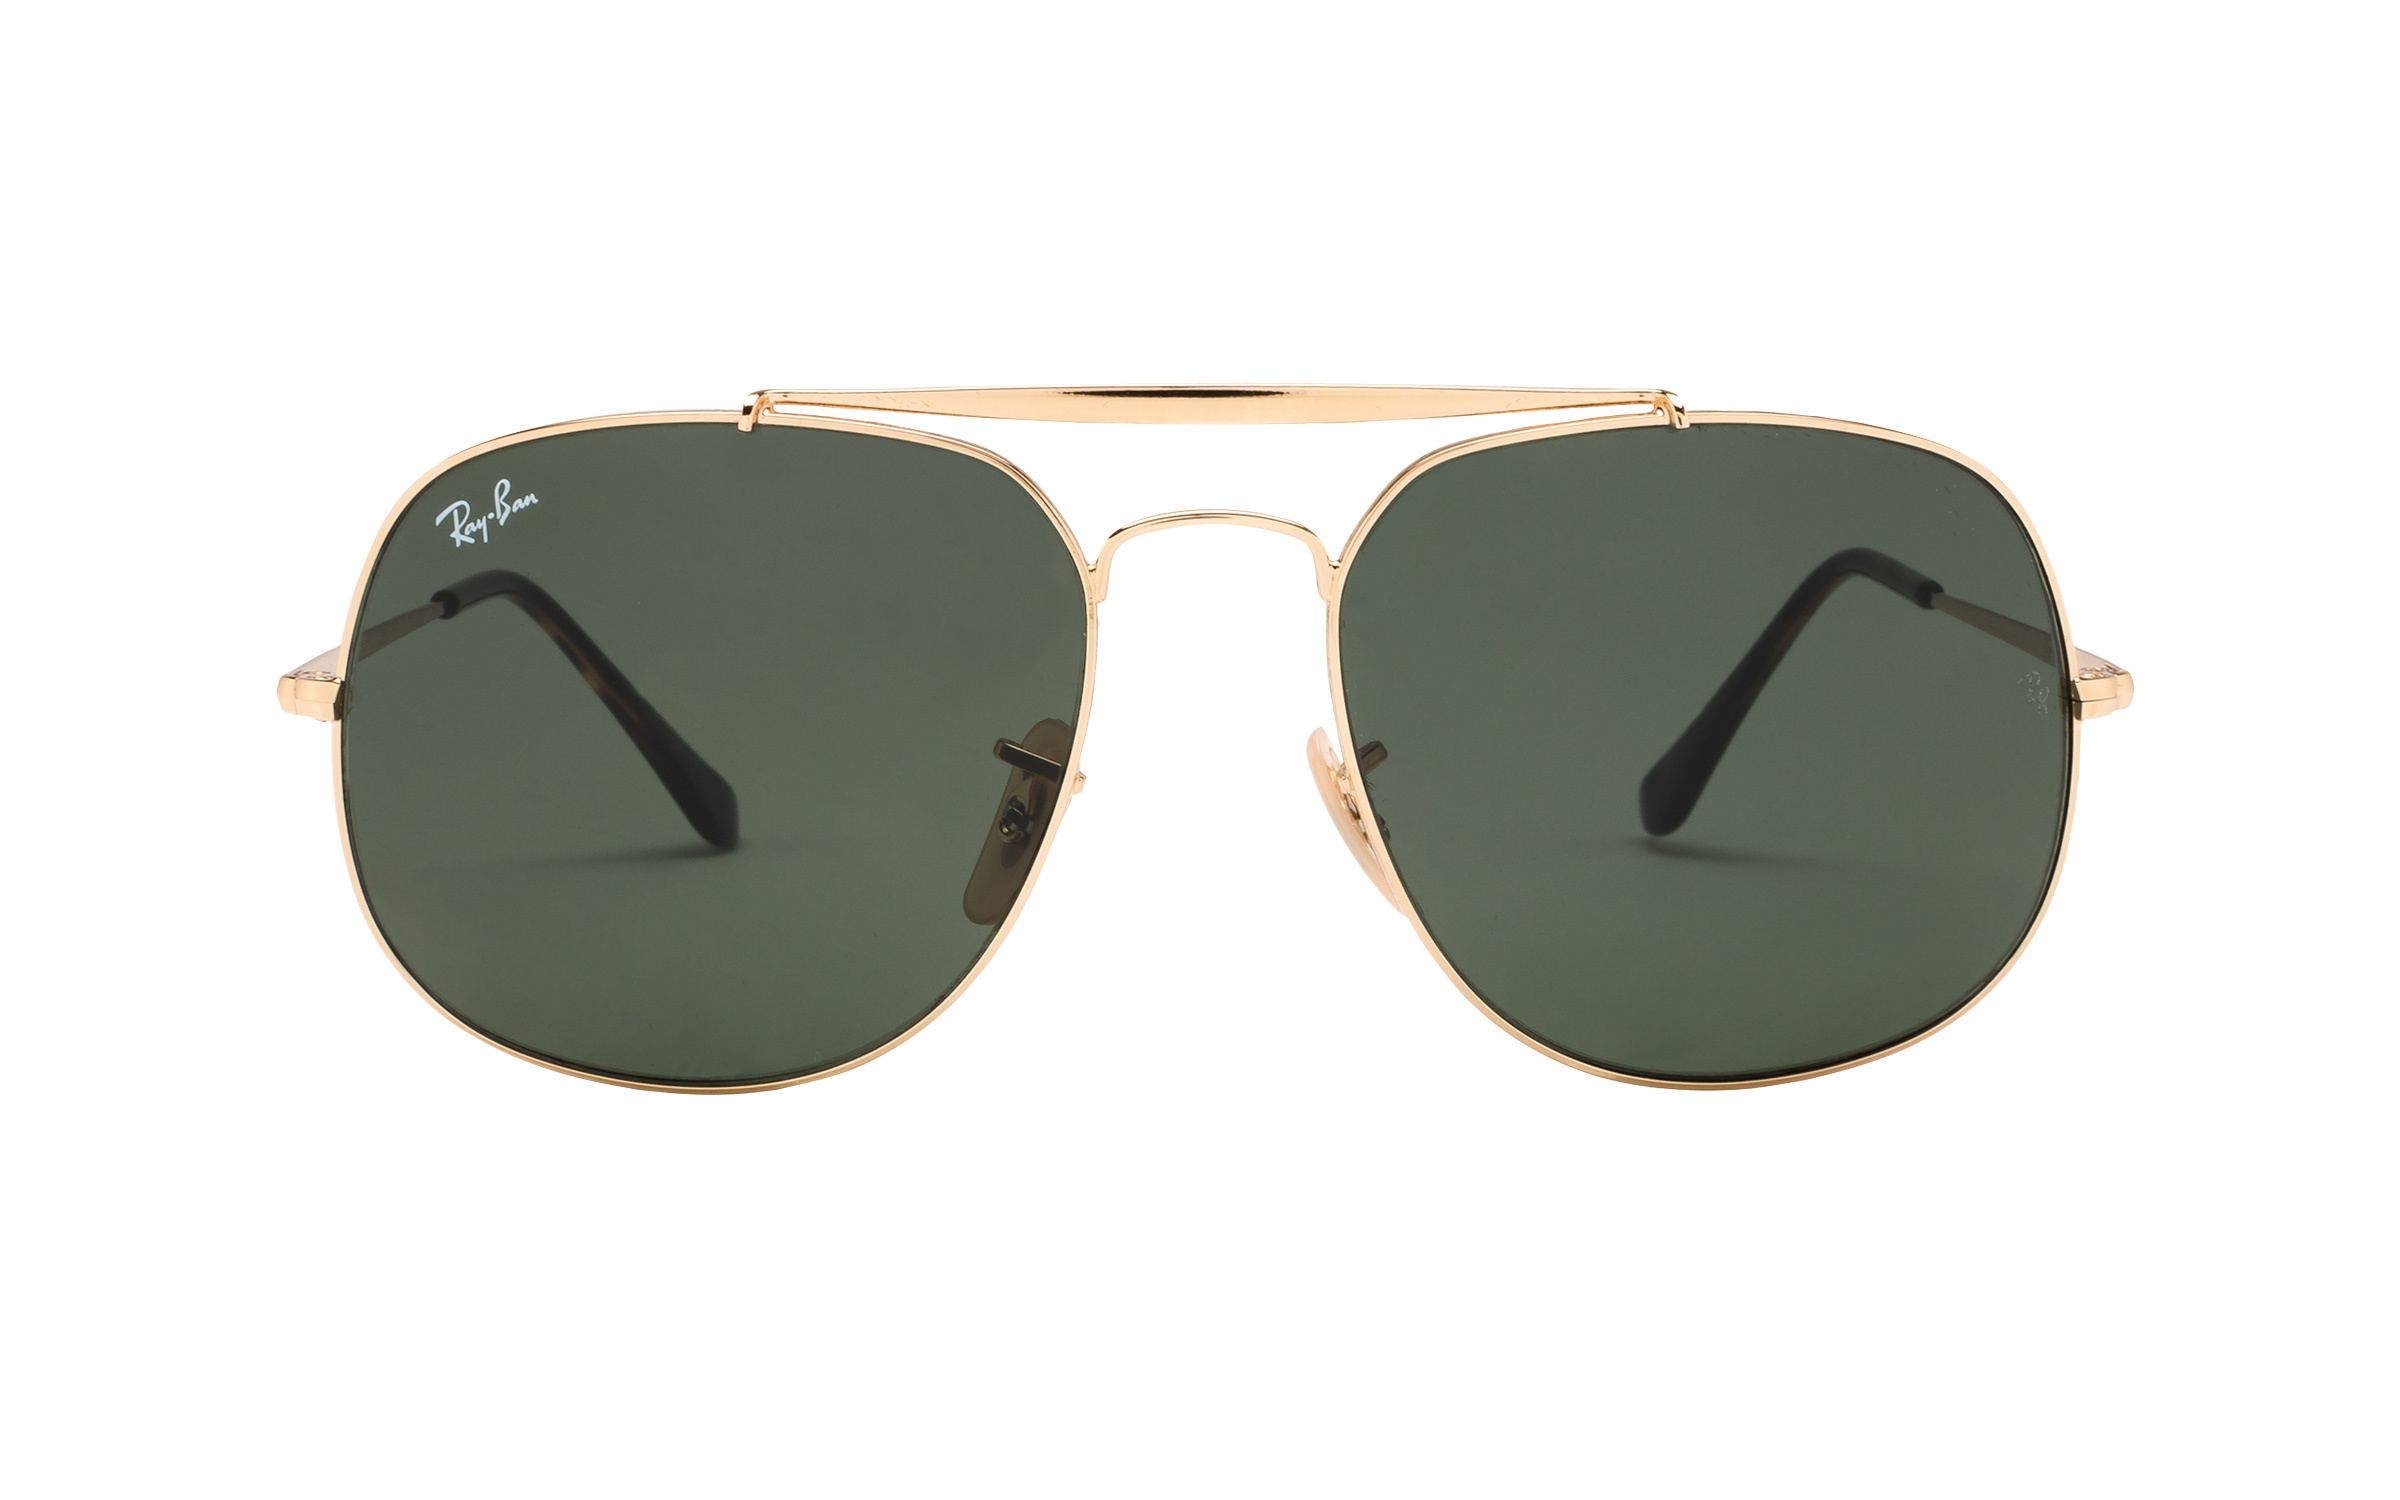 RayBan Ray-Ban RB3561 001 57 Sunglasses in Gold | Plastic/Metal - Online Coastal